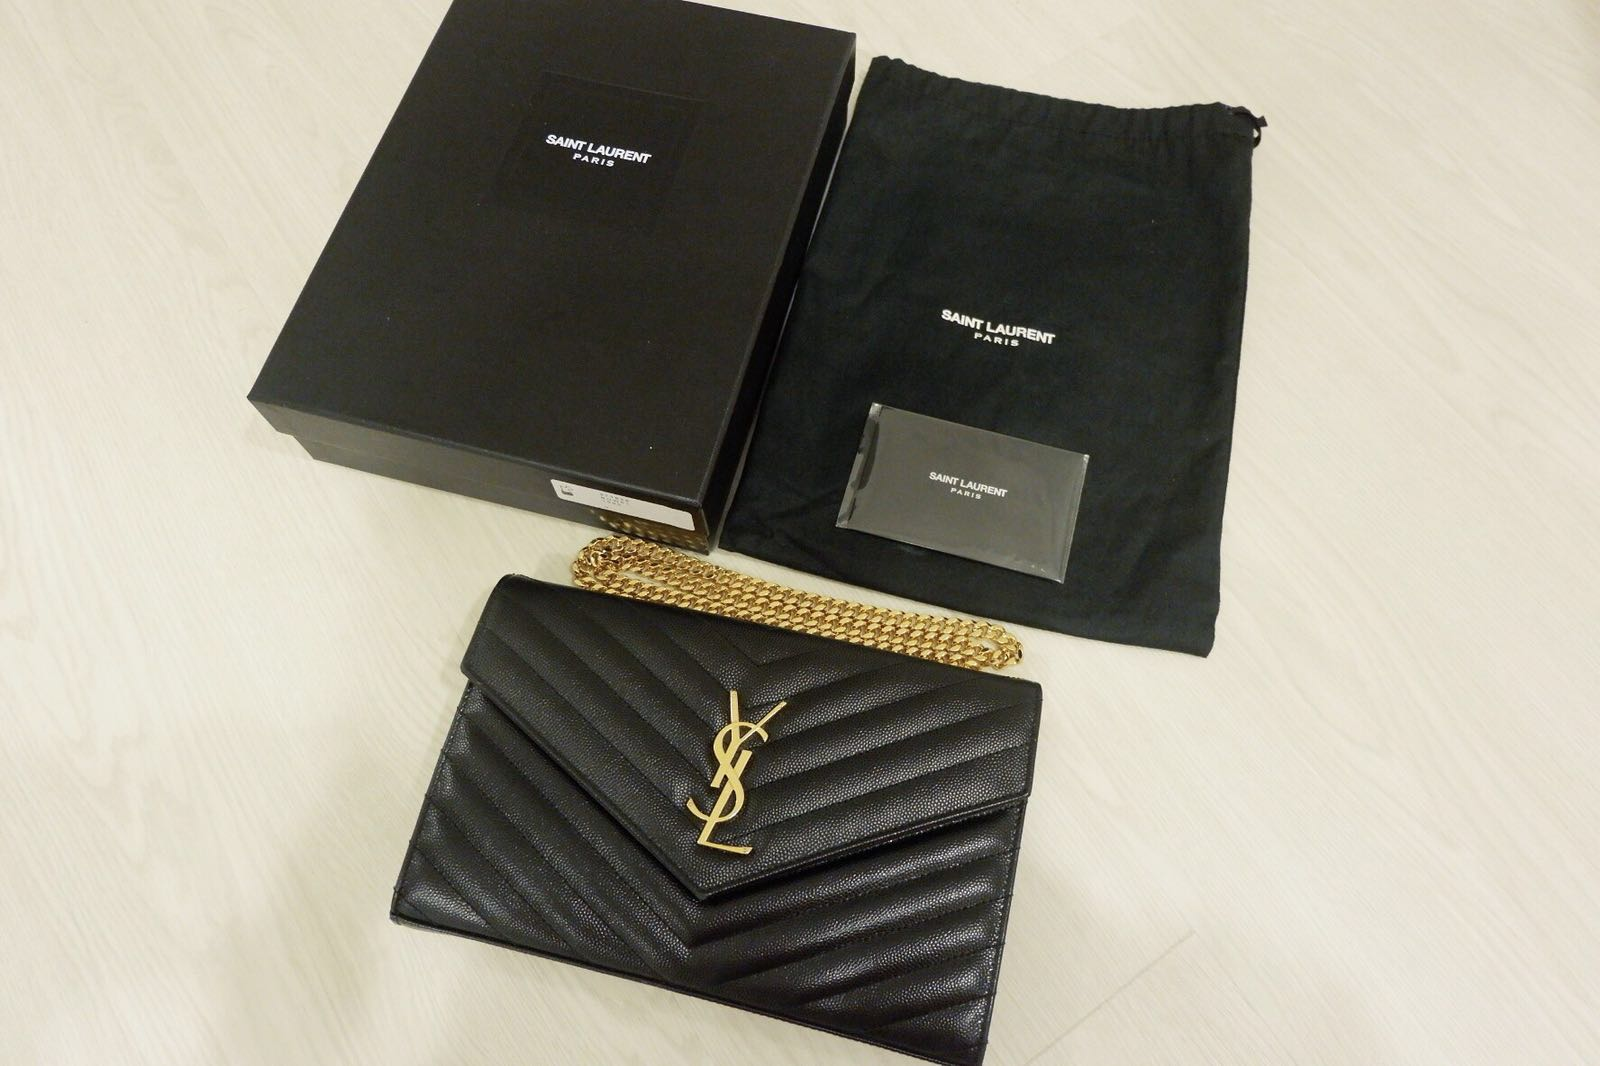 03b6ba8afd Monogram Saint Laurent Chain Wallet In Black Grain YSL WOC, Luxury ...